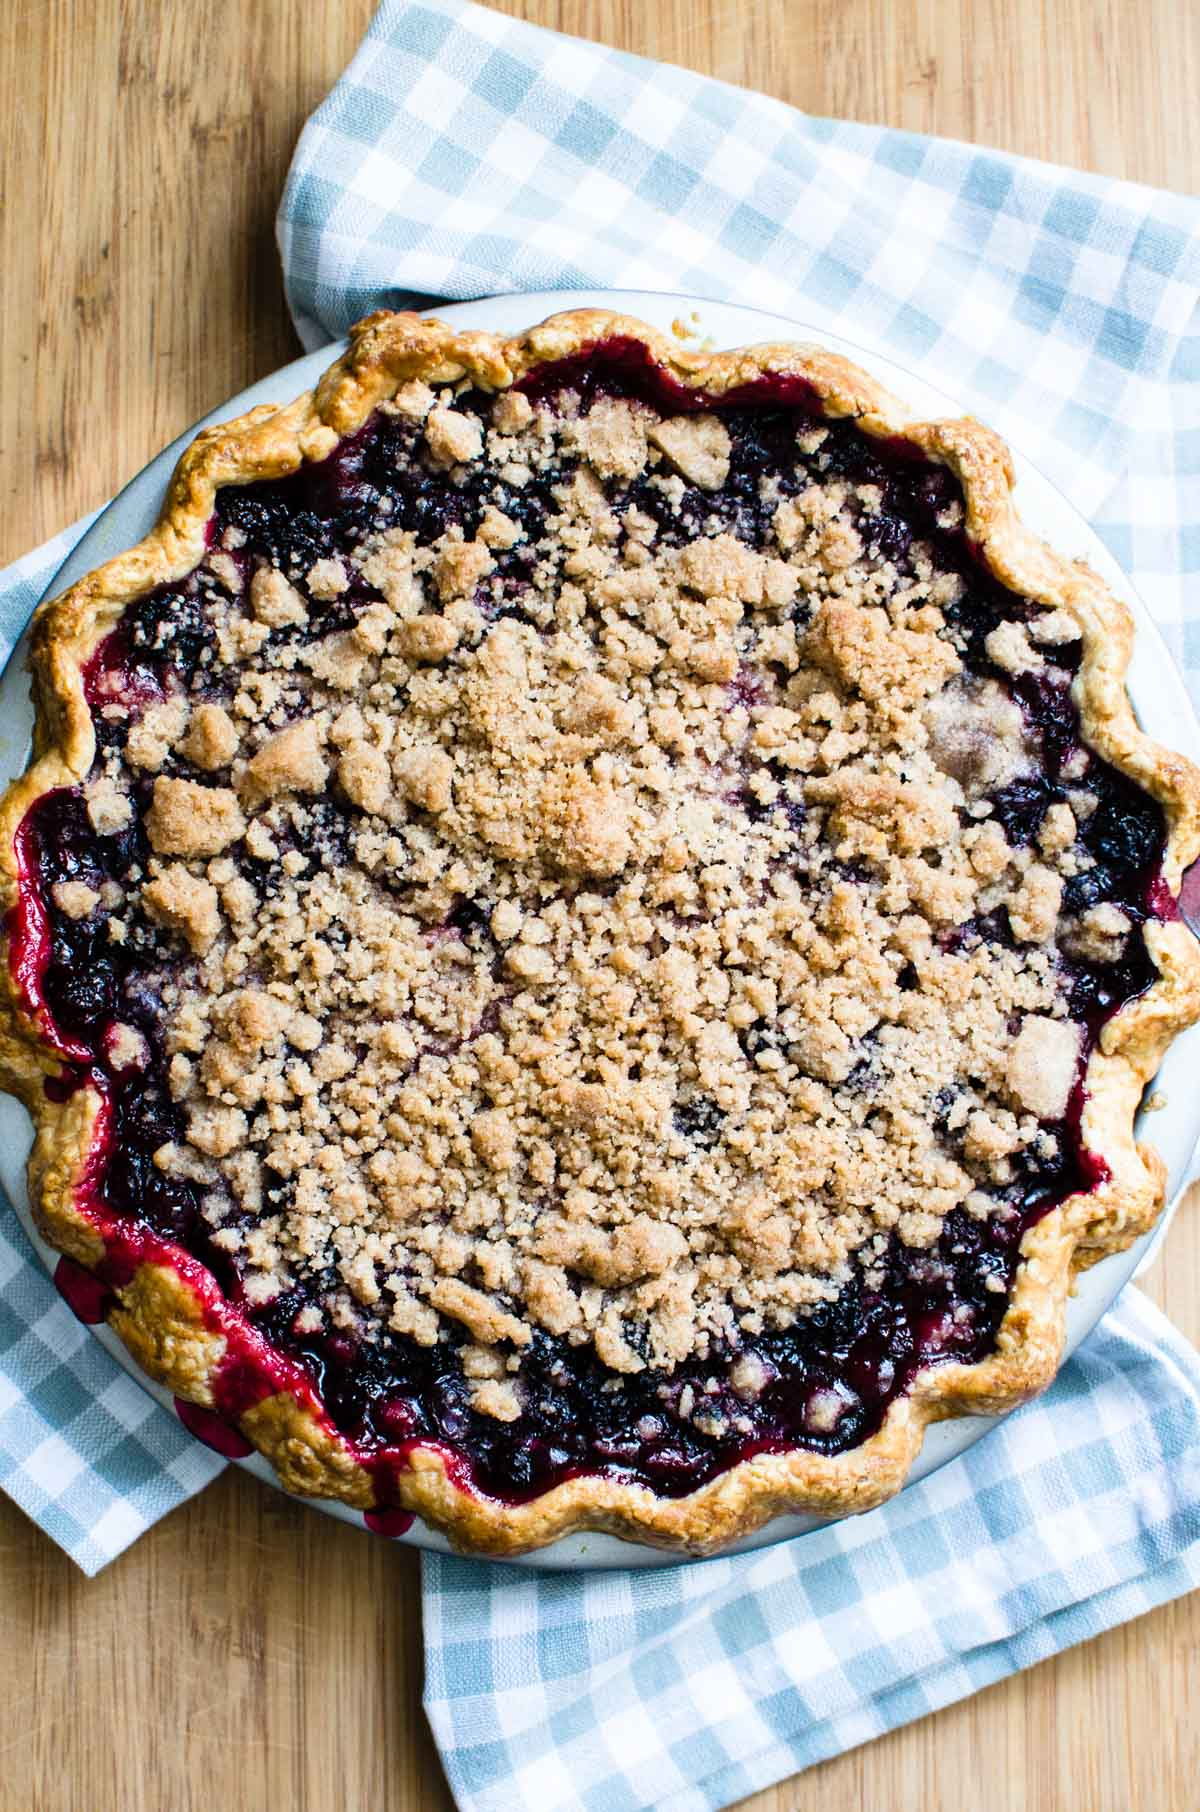 Mixed berry crumble pie just out of the oven on a wood board.